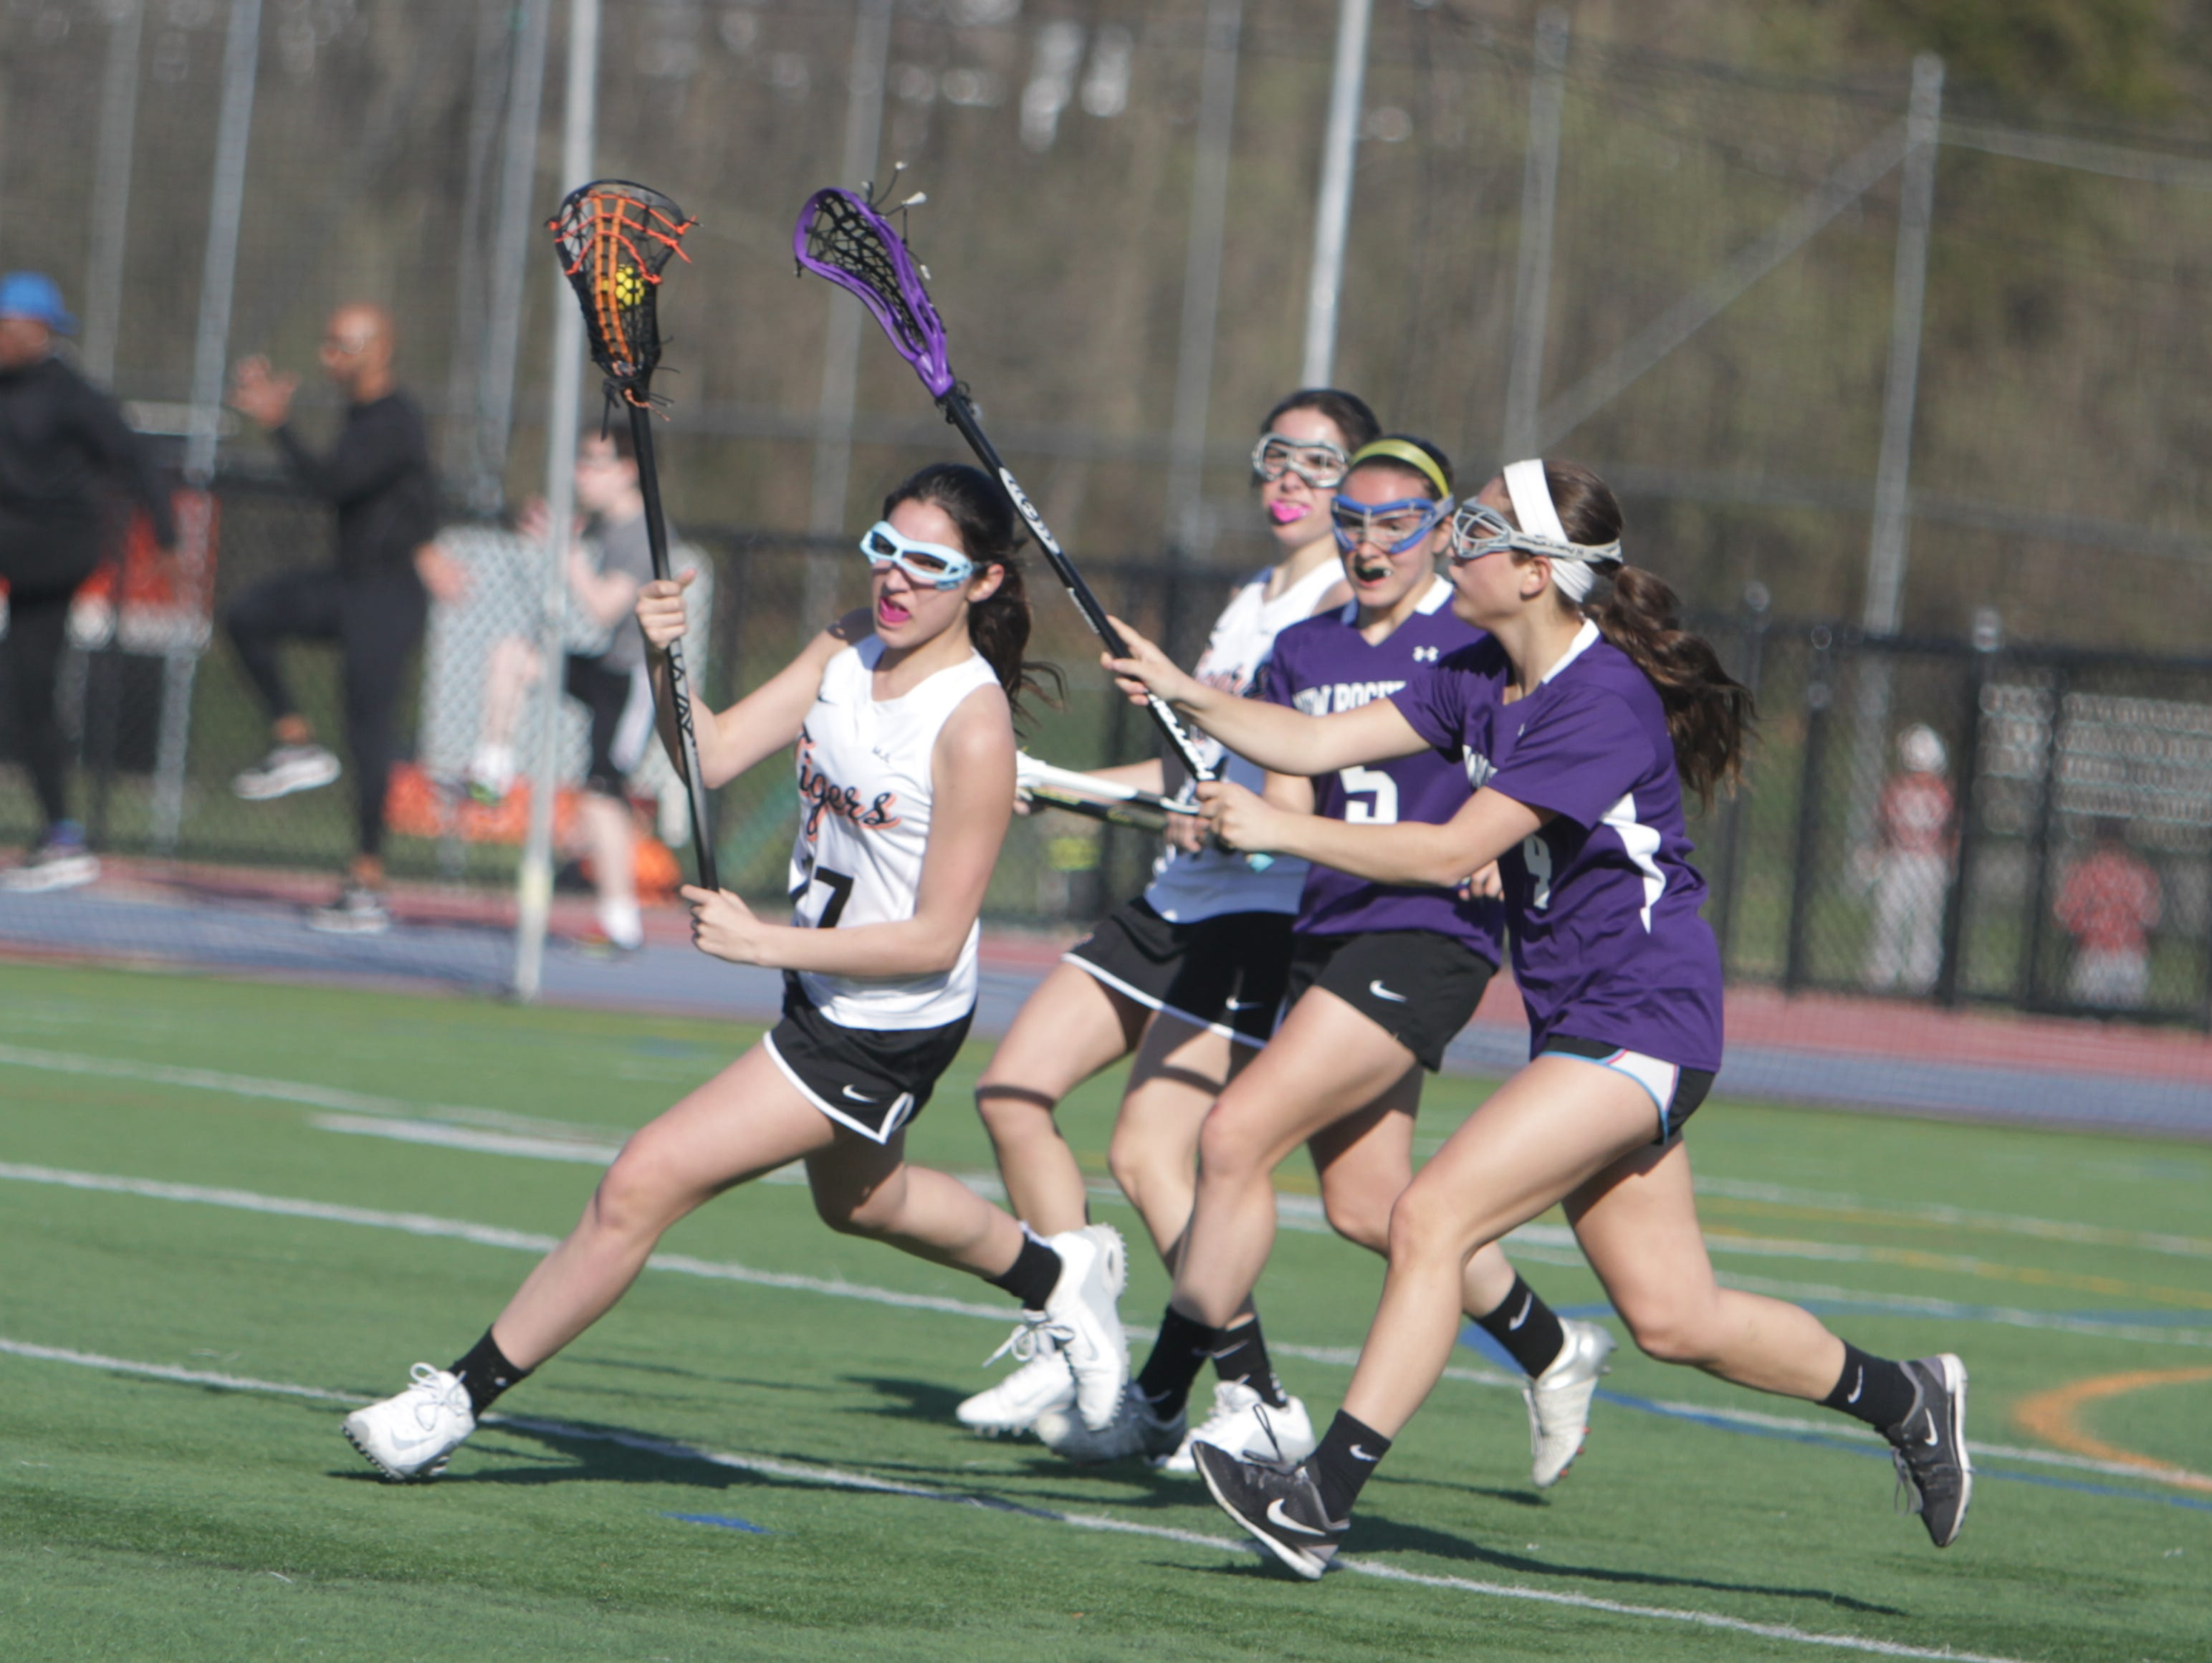 Action during a Section 1 girls lacrosse game between New Rochelle and White Plains at White Plains High School on Wednesday, April 13th, 2016. White Plains won 11-6.